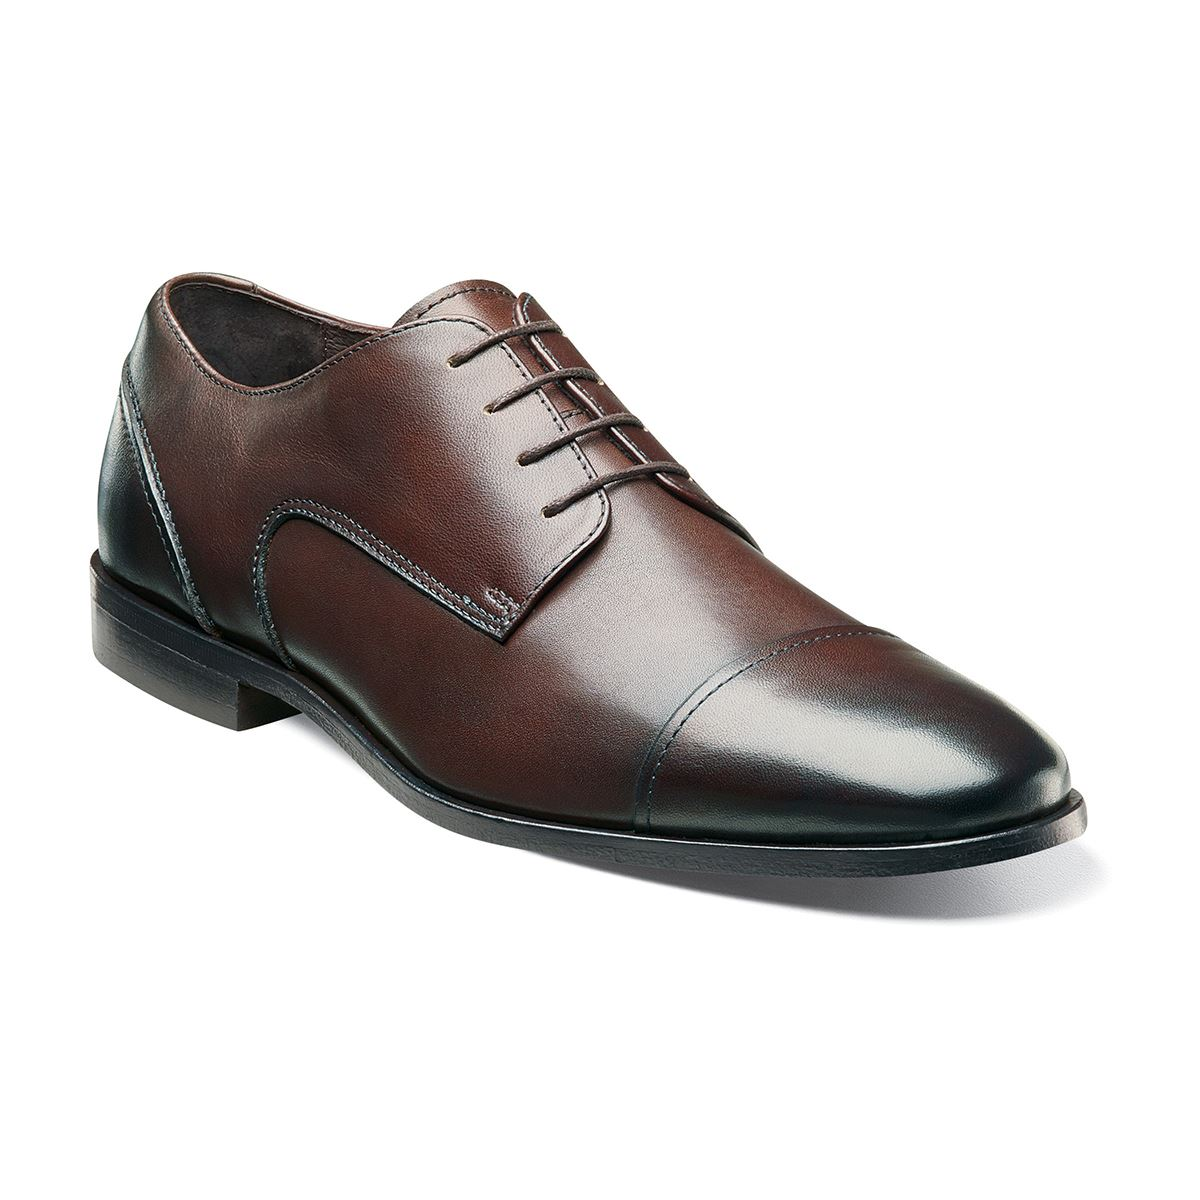 Men's Florsheim Jet Cap Ox 10 3e Brown Smooth Leather. About this product.  2 watching. Picture 1 of 2; Picture 2 of 2